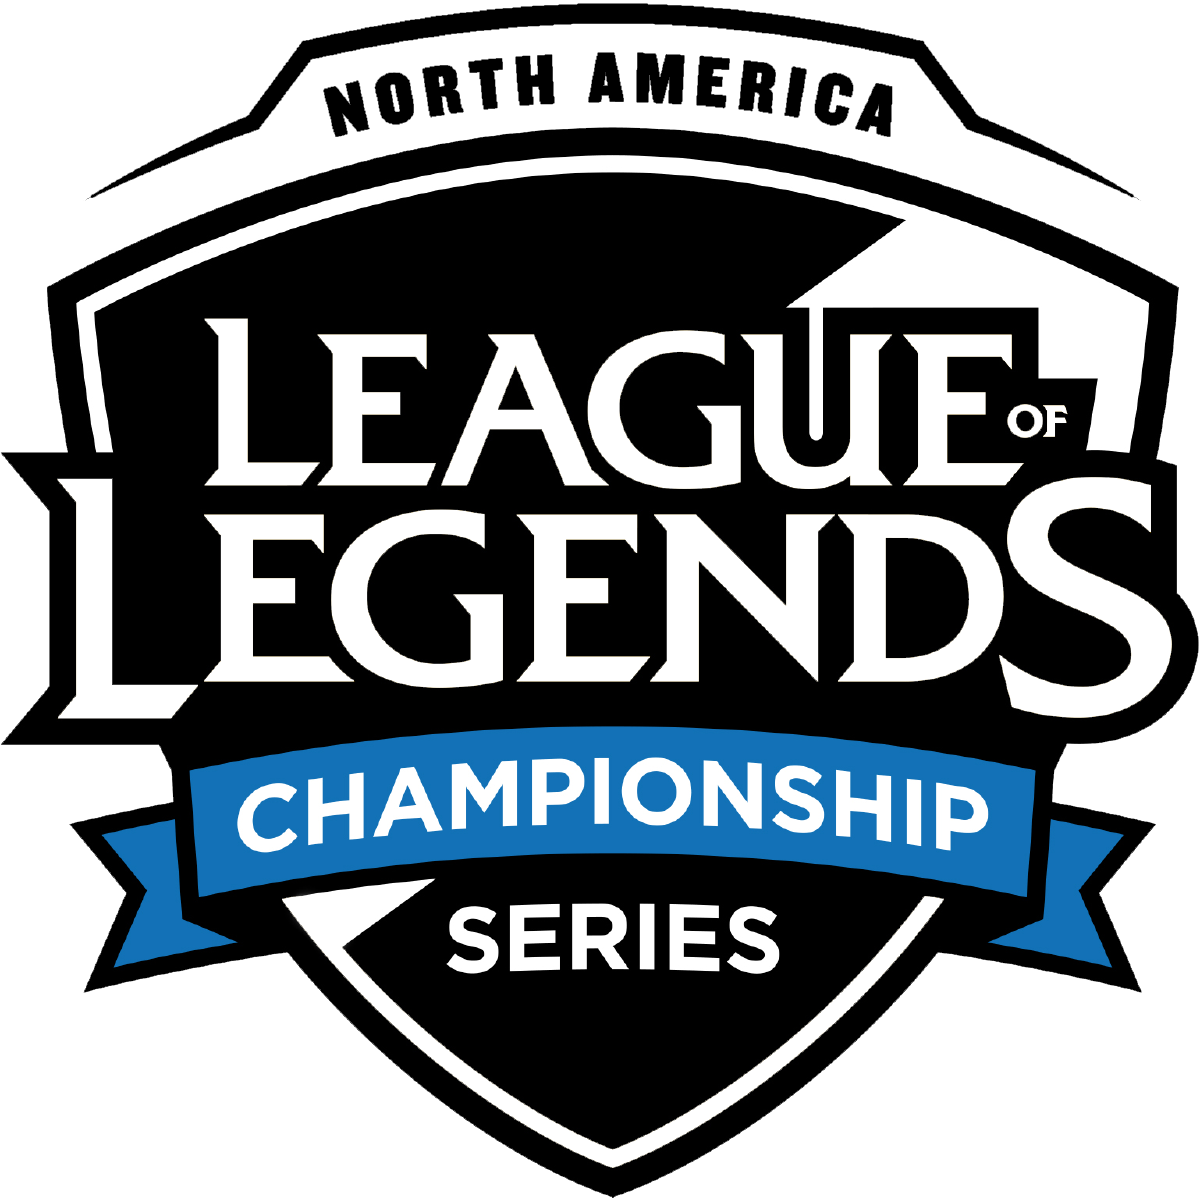 TM Verified Presale Codes For 2017 North American League of Legends Championship Series Summer Finals